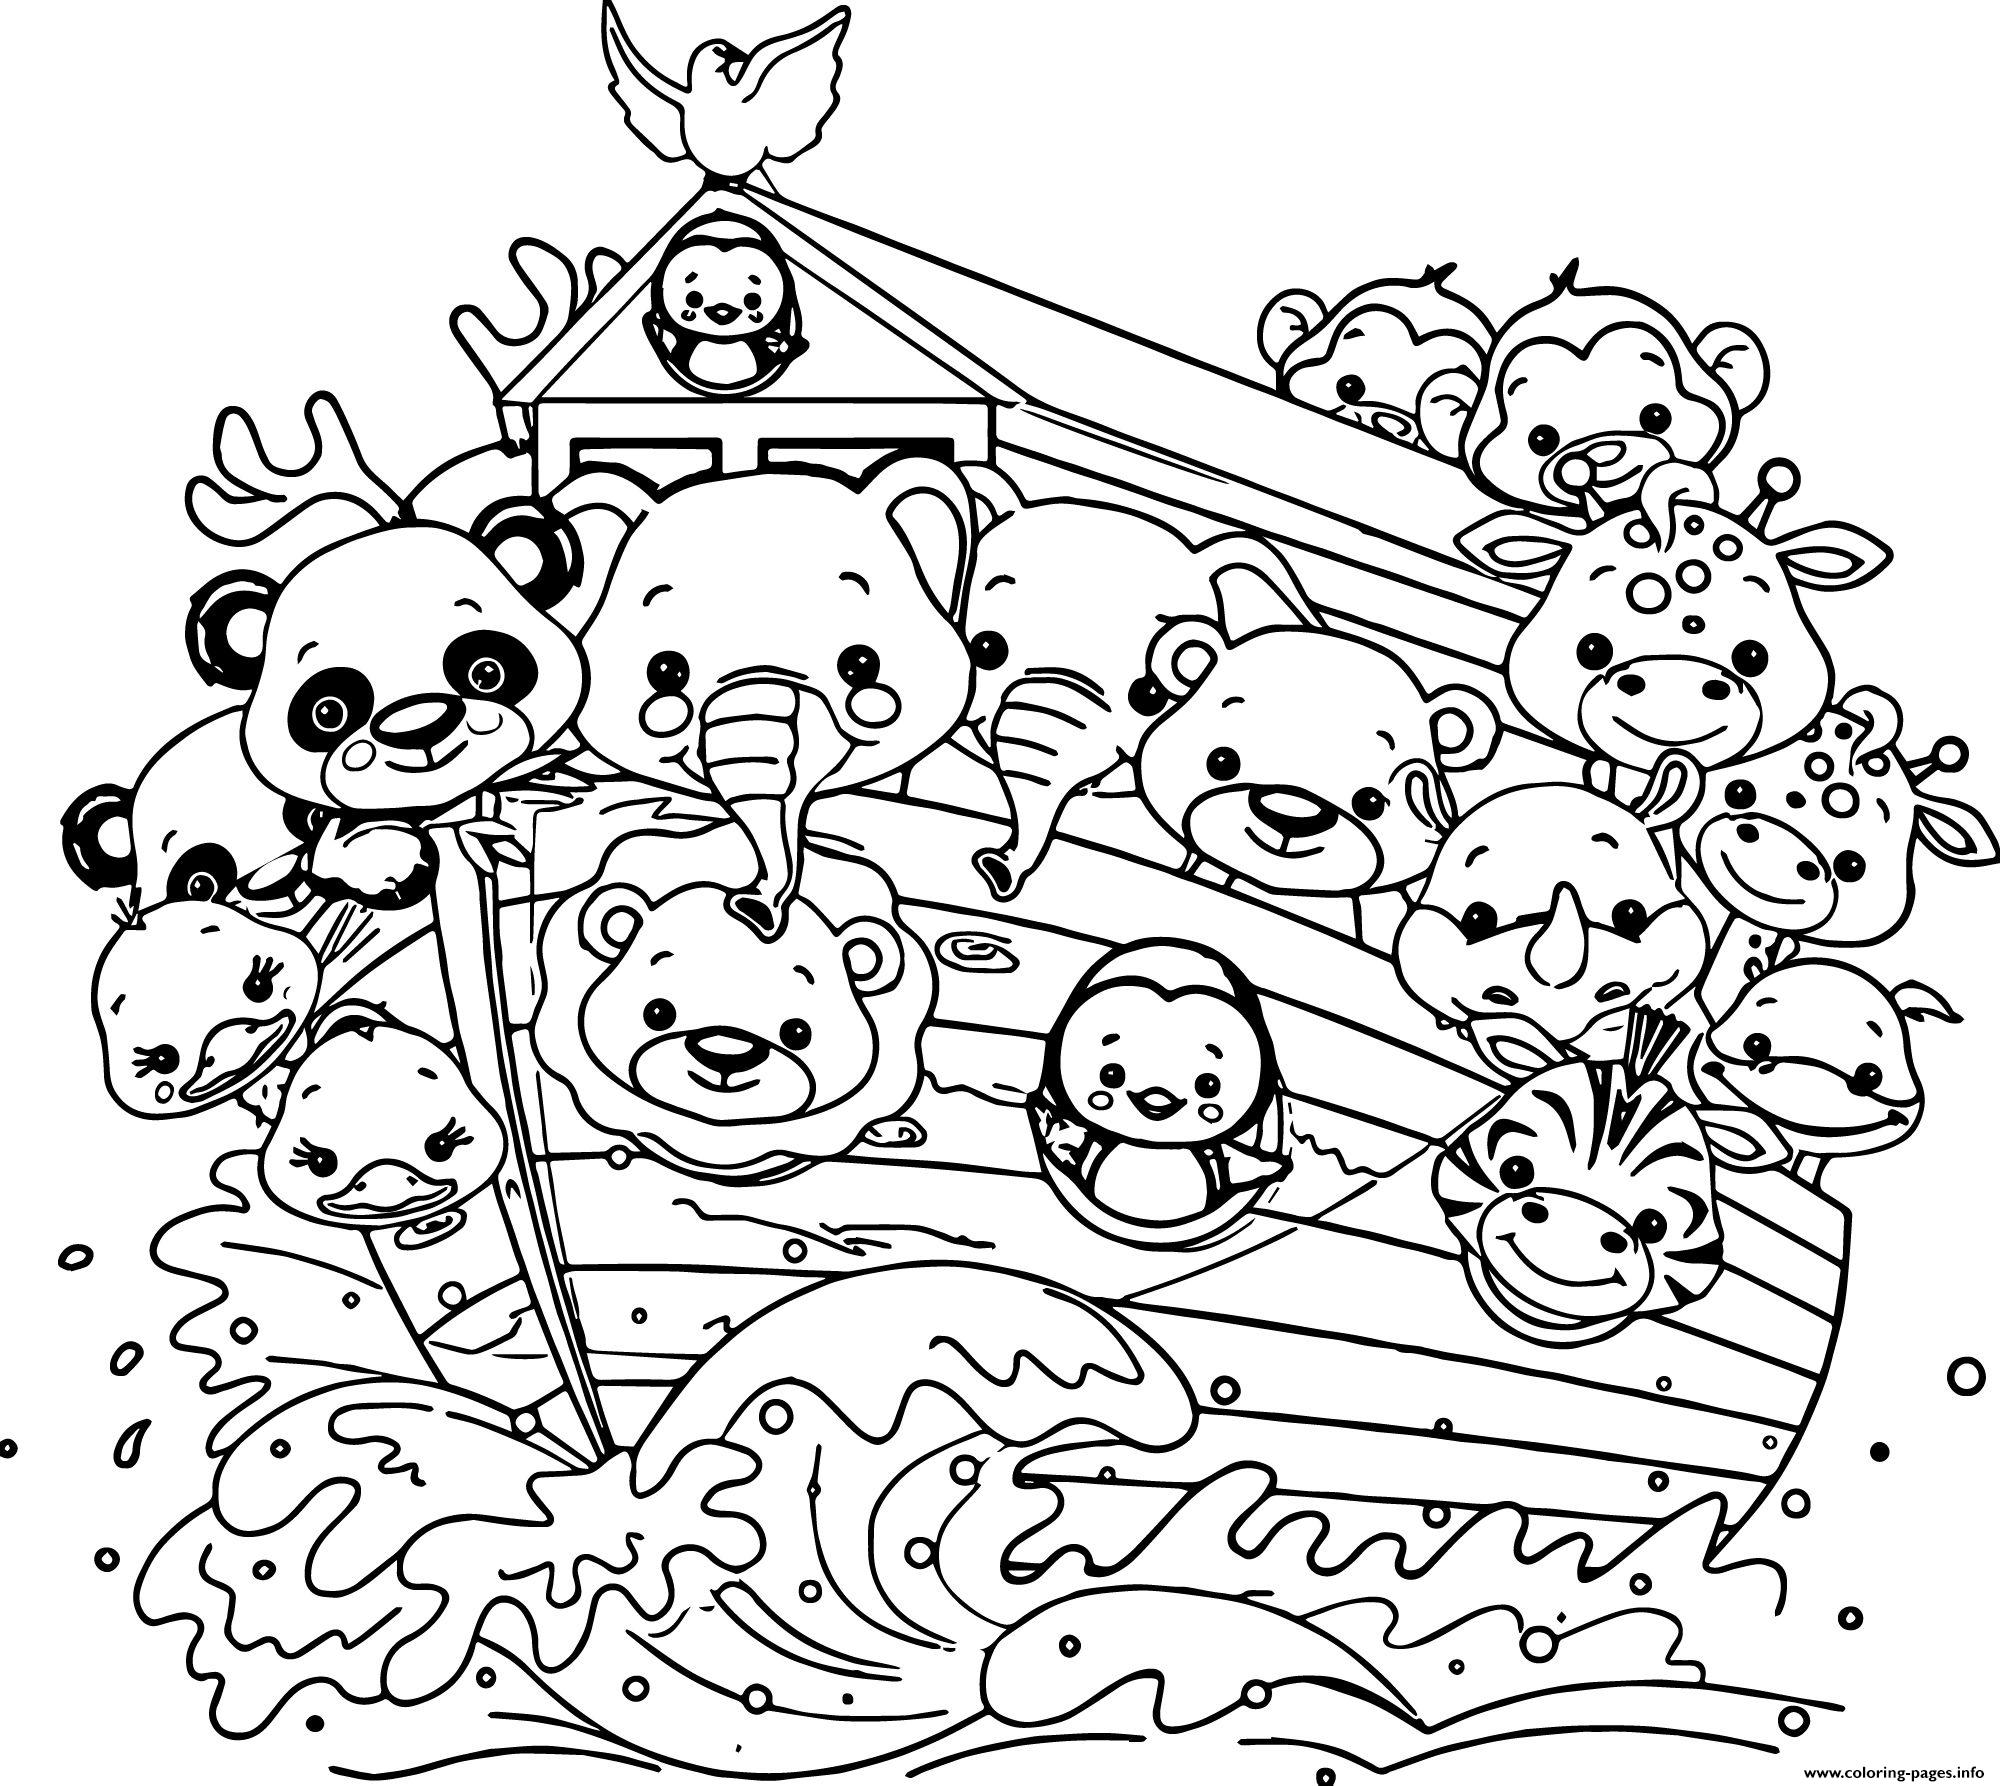 Animal Cartoon On A Boat coloring pages